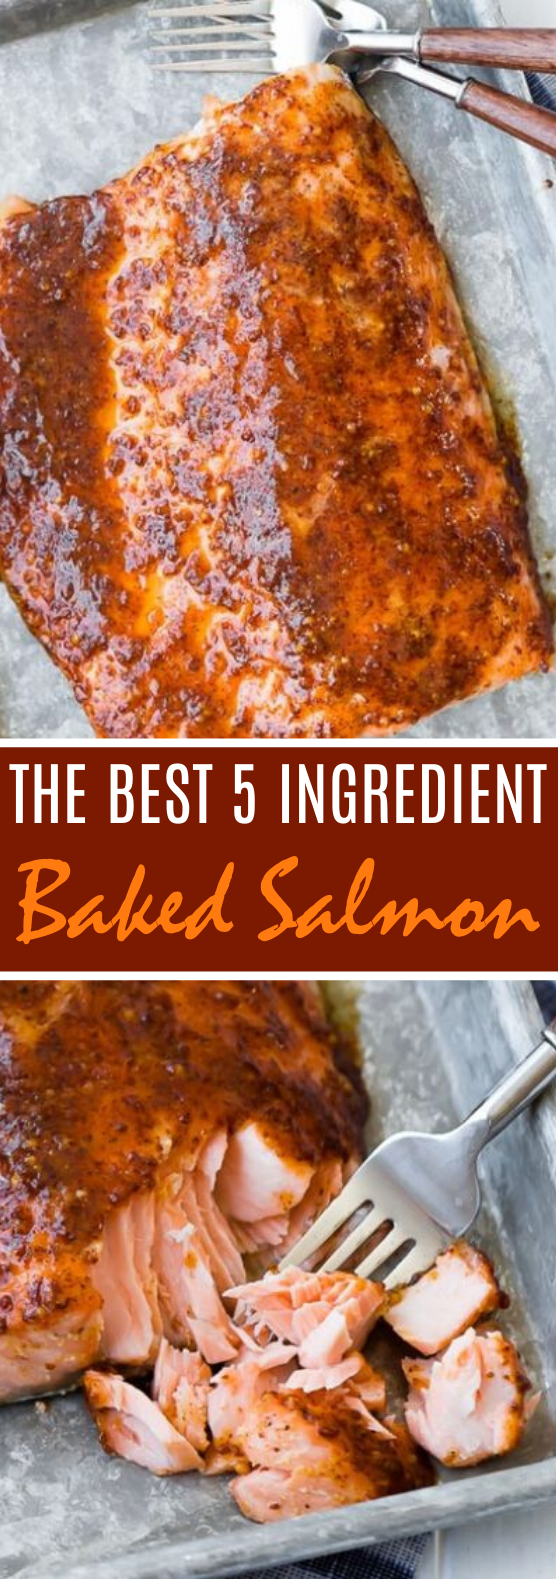 The Best 5 Ingredient Baked Salmon #dinner #seafod #fish #baked #easy